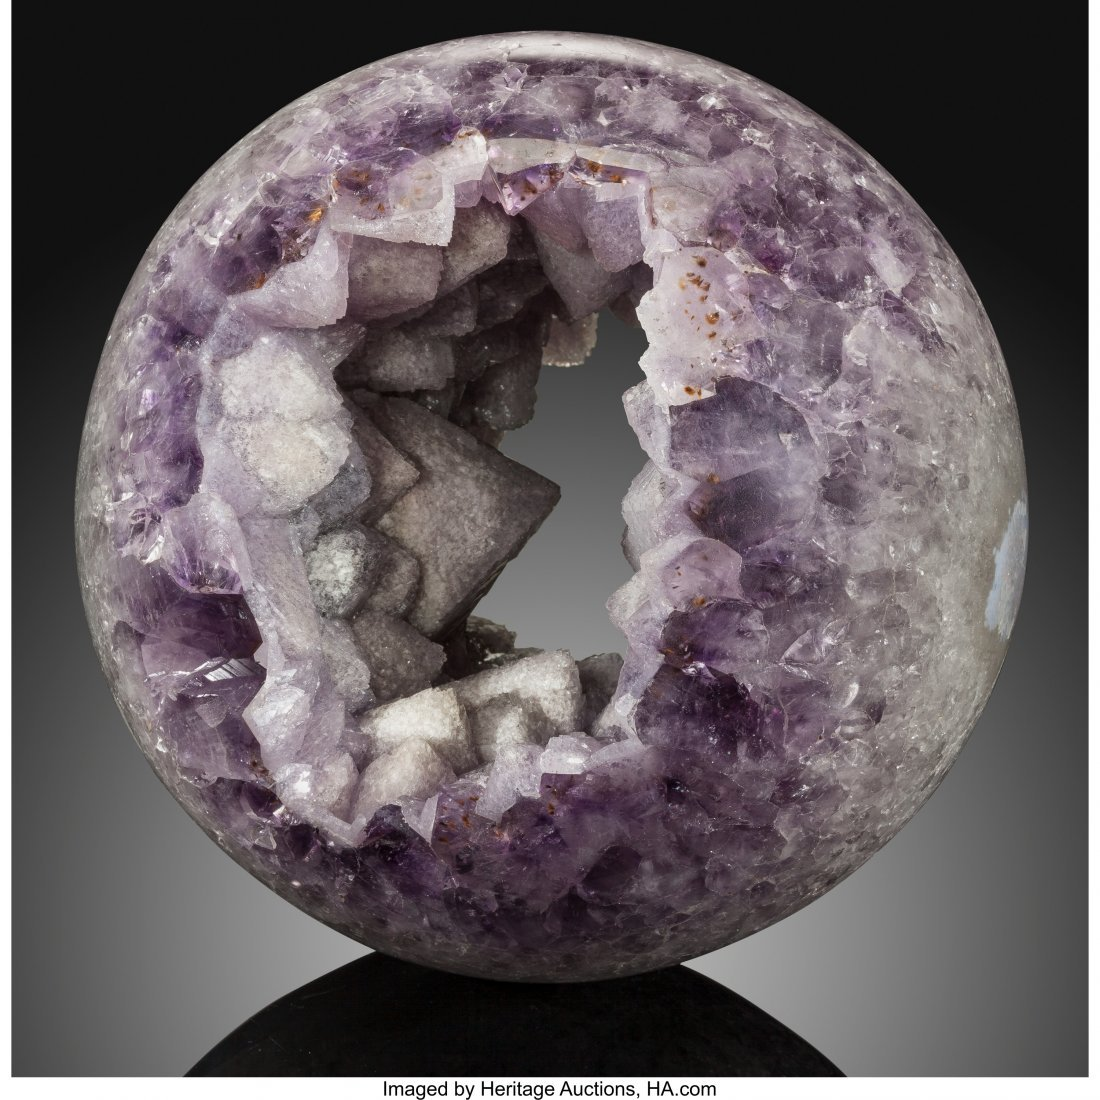 72062: Amethyst Sphere Stone Source: Rio Grande do Sul,